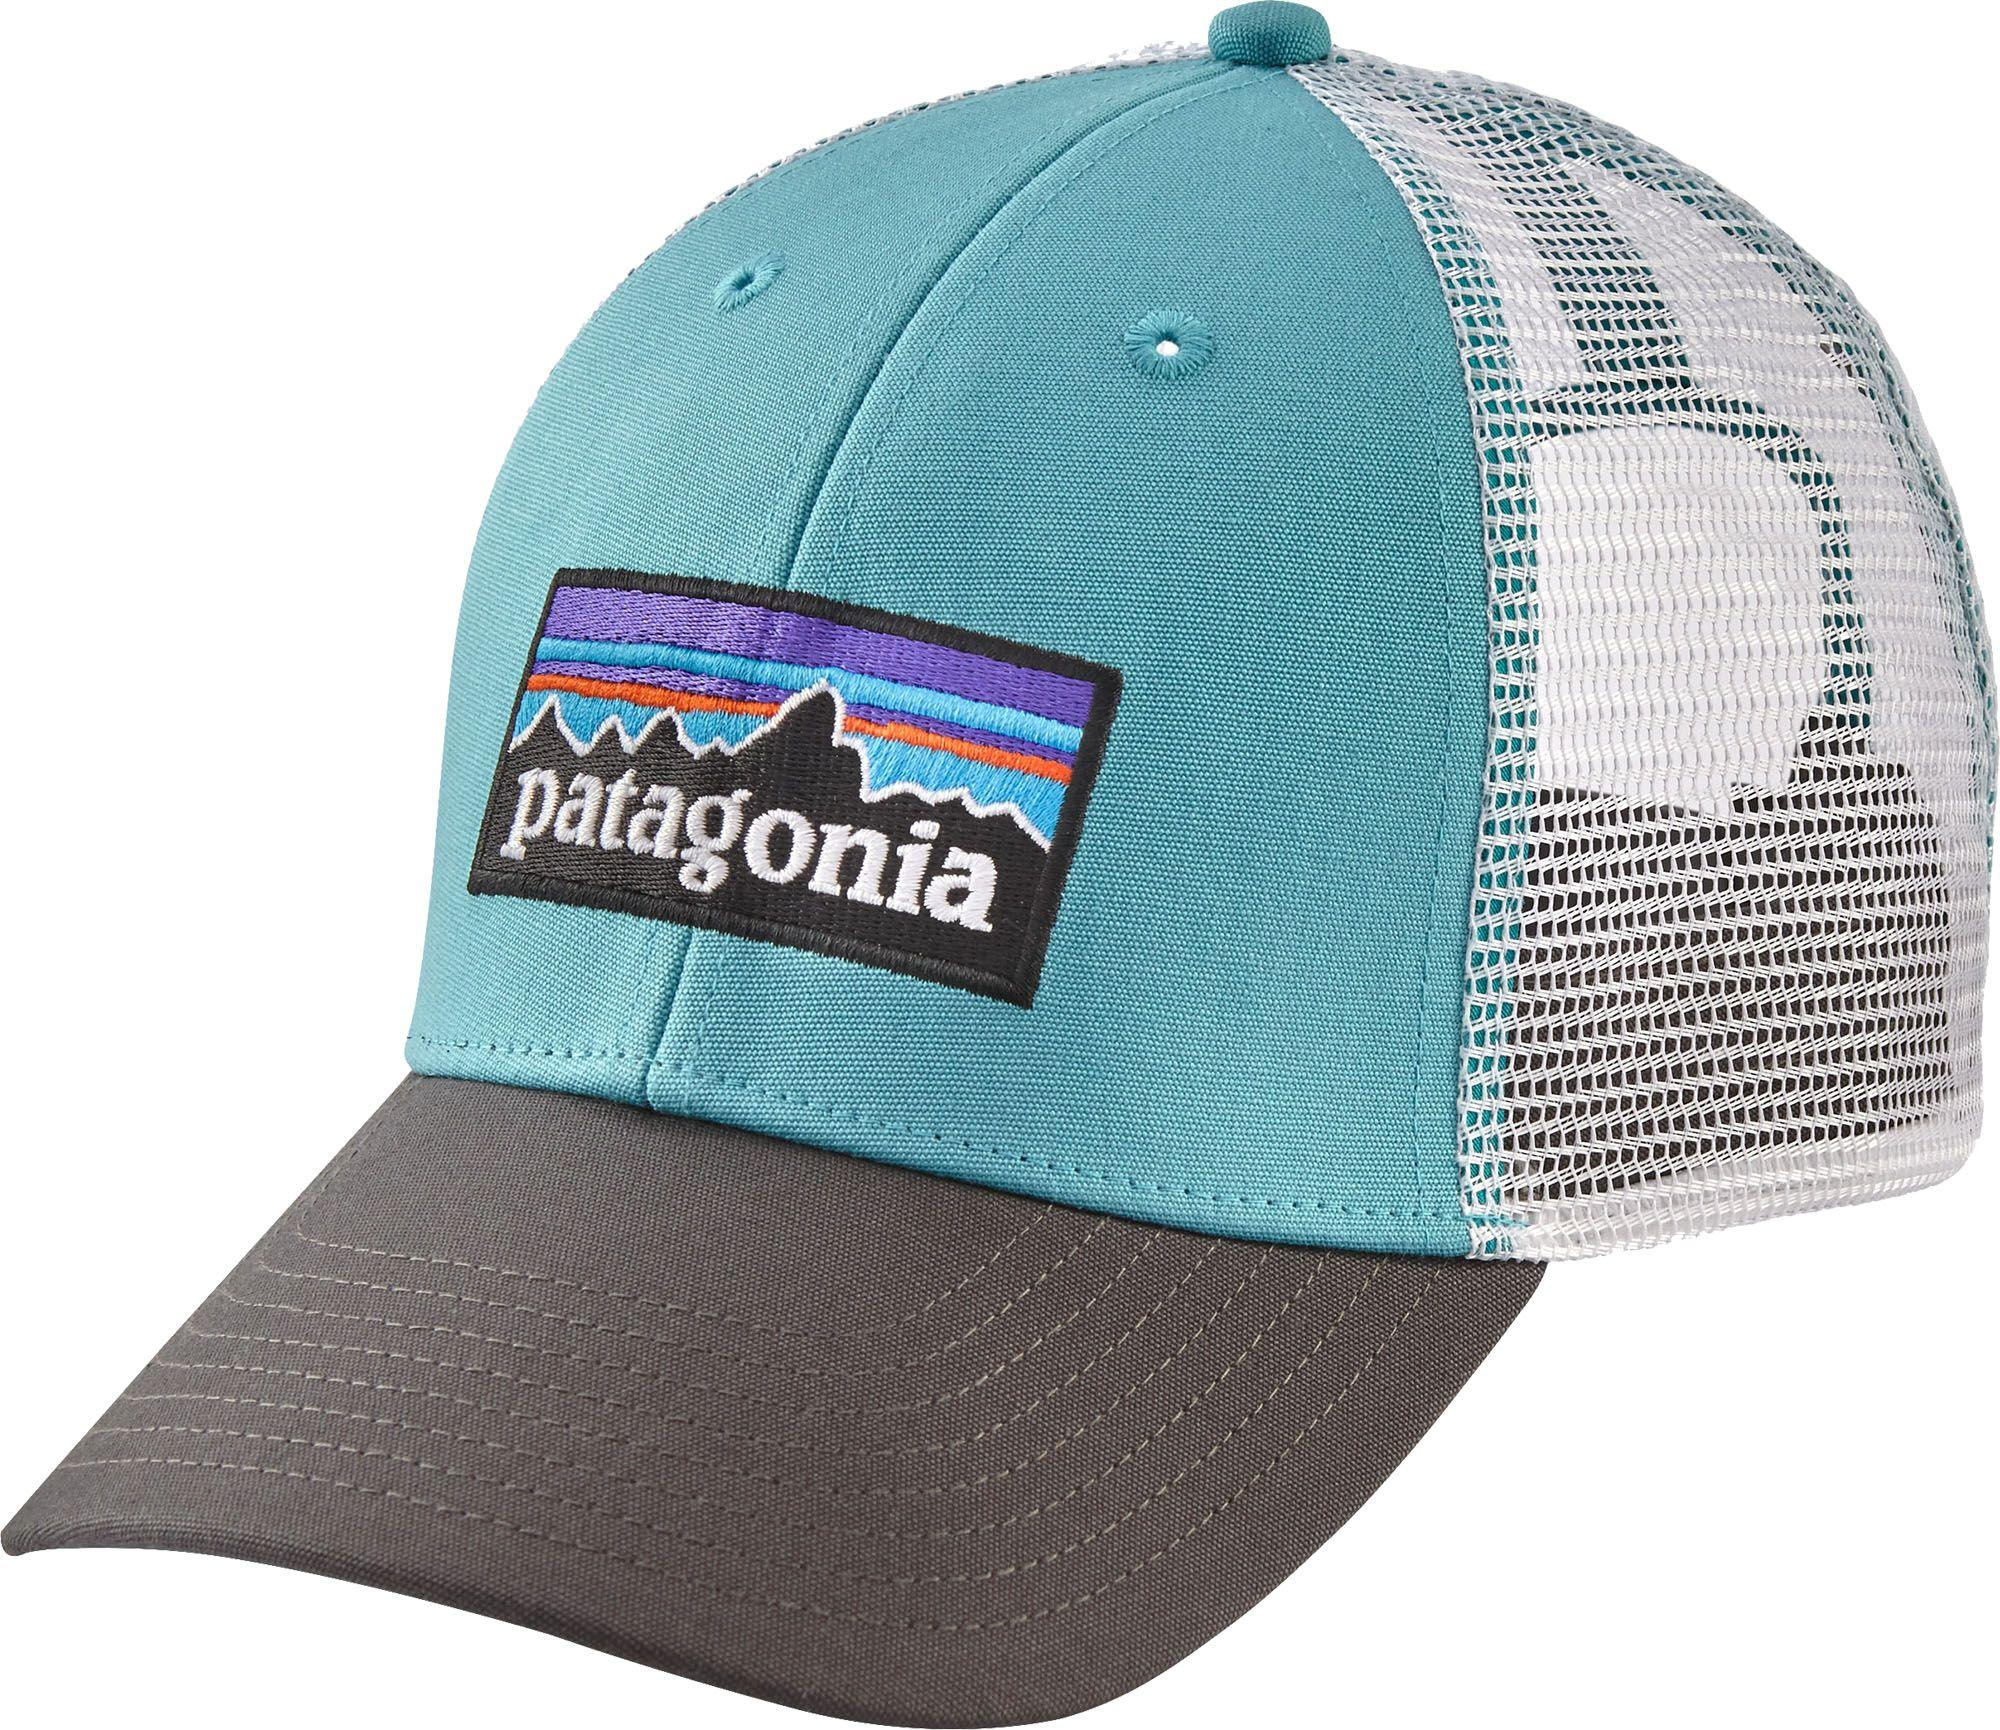 0d7c693962b7c Lyst - Patagonia P-6 Lopro Trucker Hat in Blue for Men